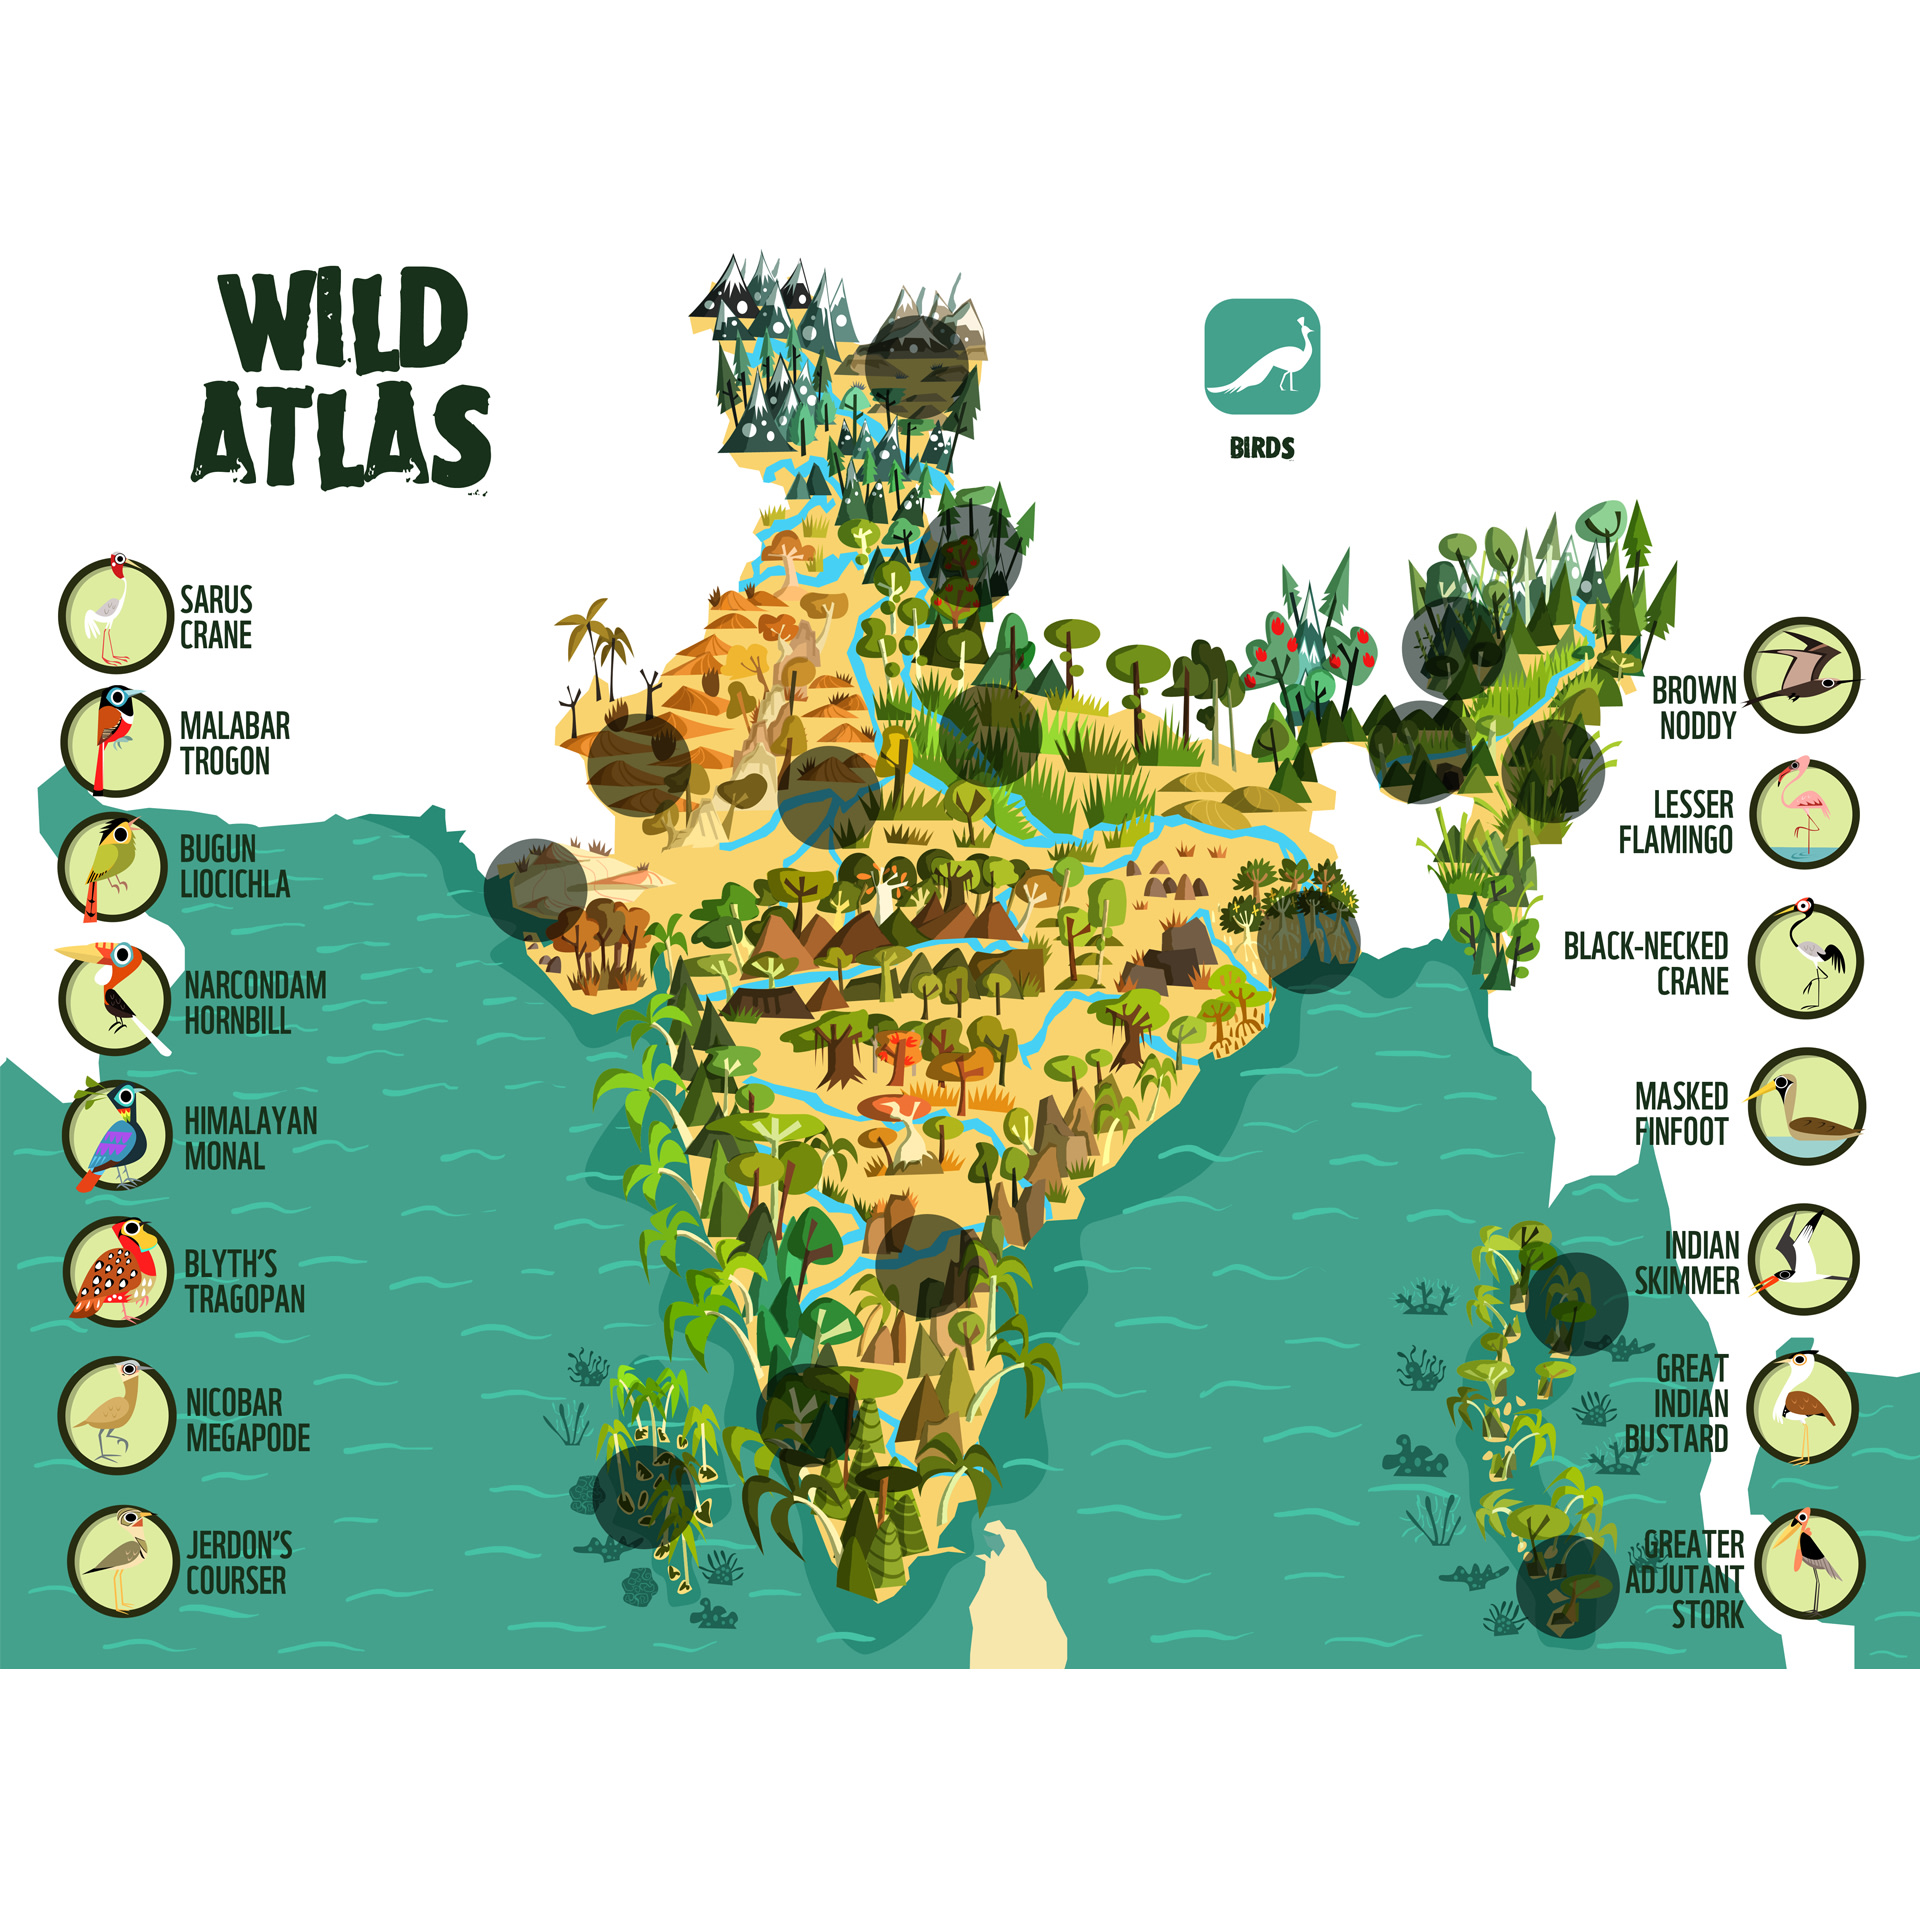 Chakravarty's illustrated maps breathe new life into landscapes and work as engaging learning tools. Copyright: WWF India One Planet Academy